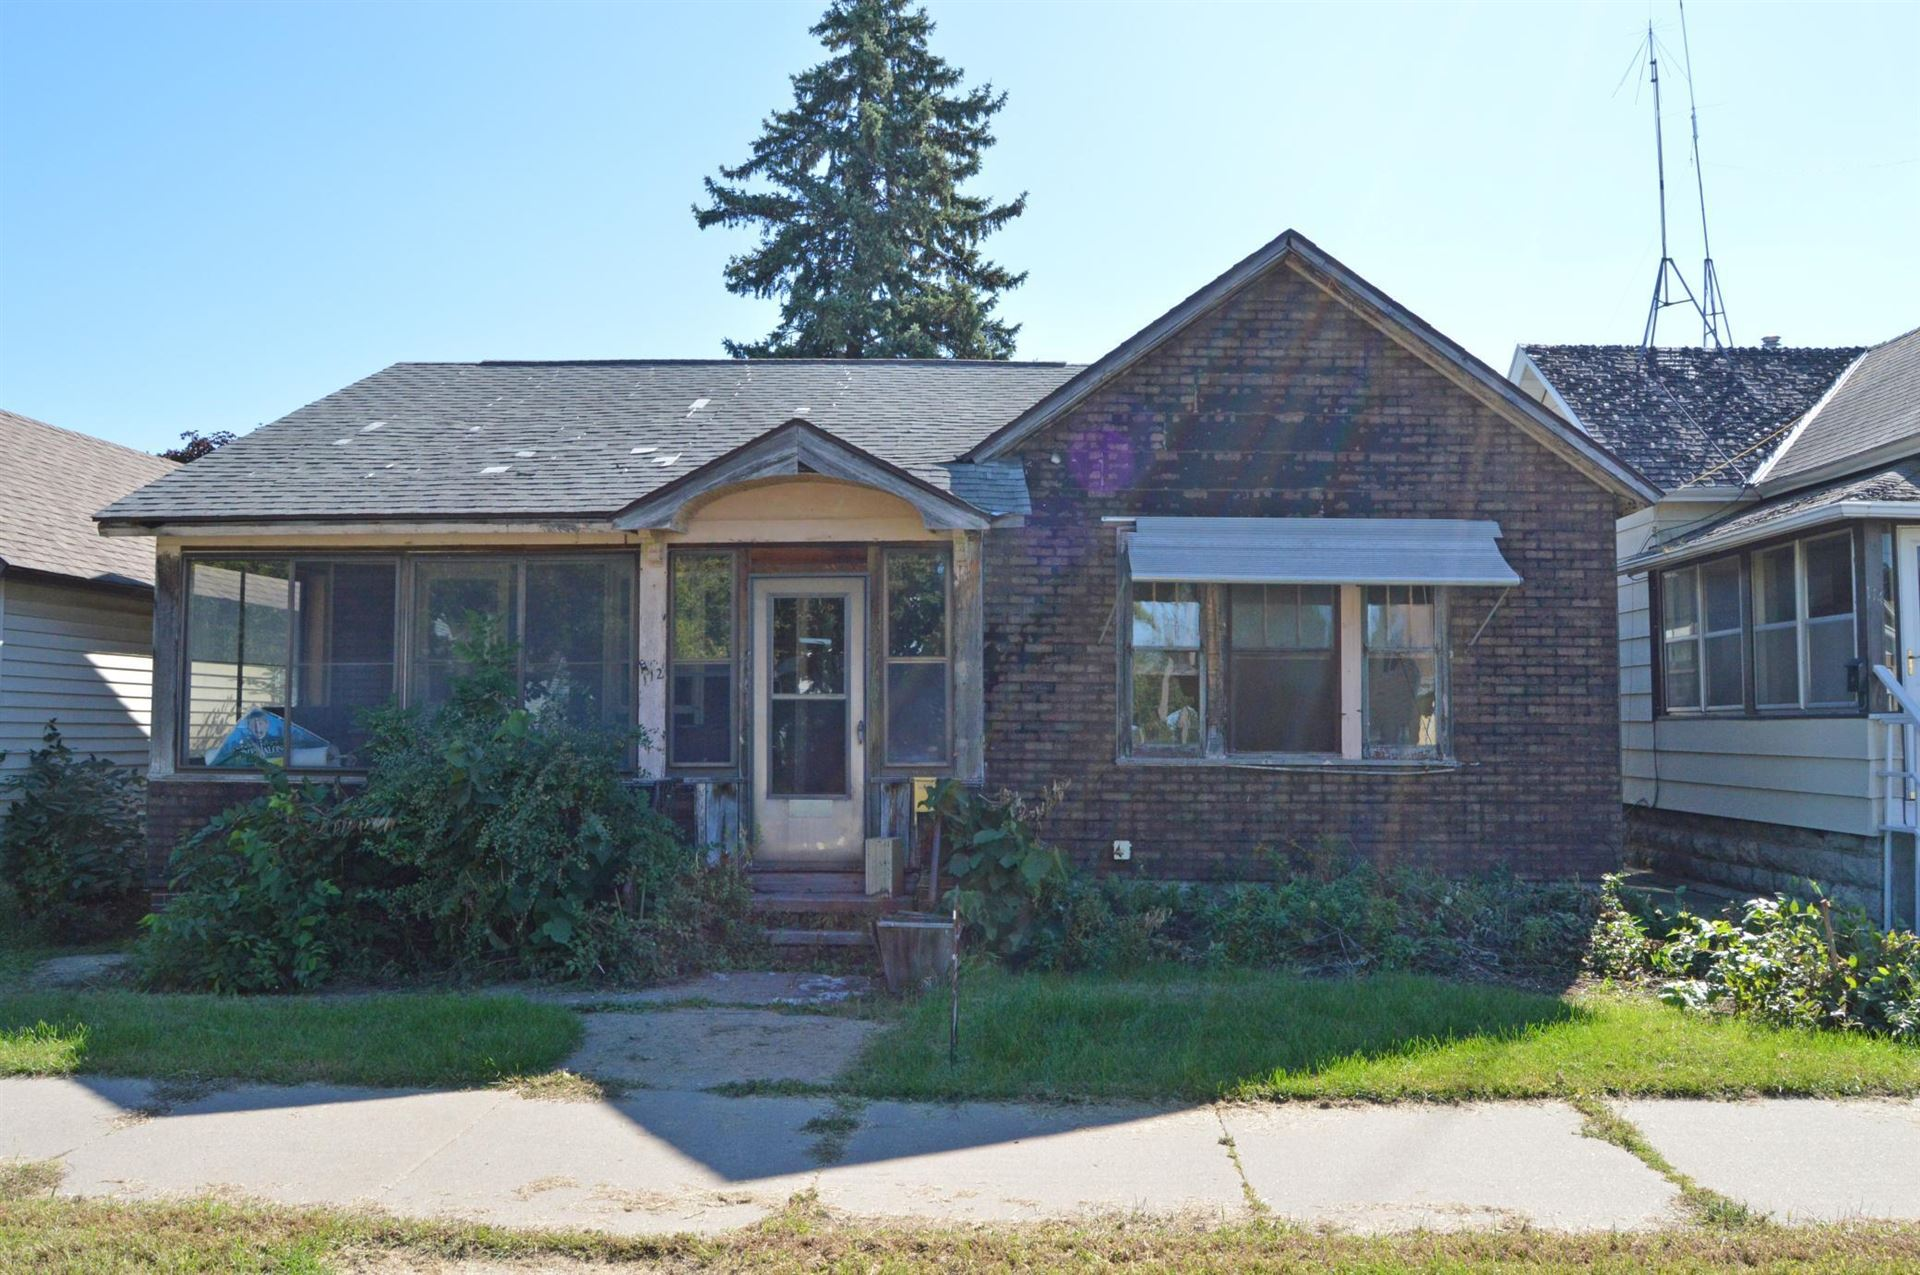 112 High Forest Street, Winona, MN 55987 - MLS#: 5657898